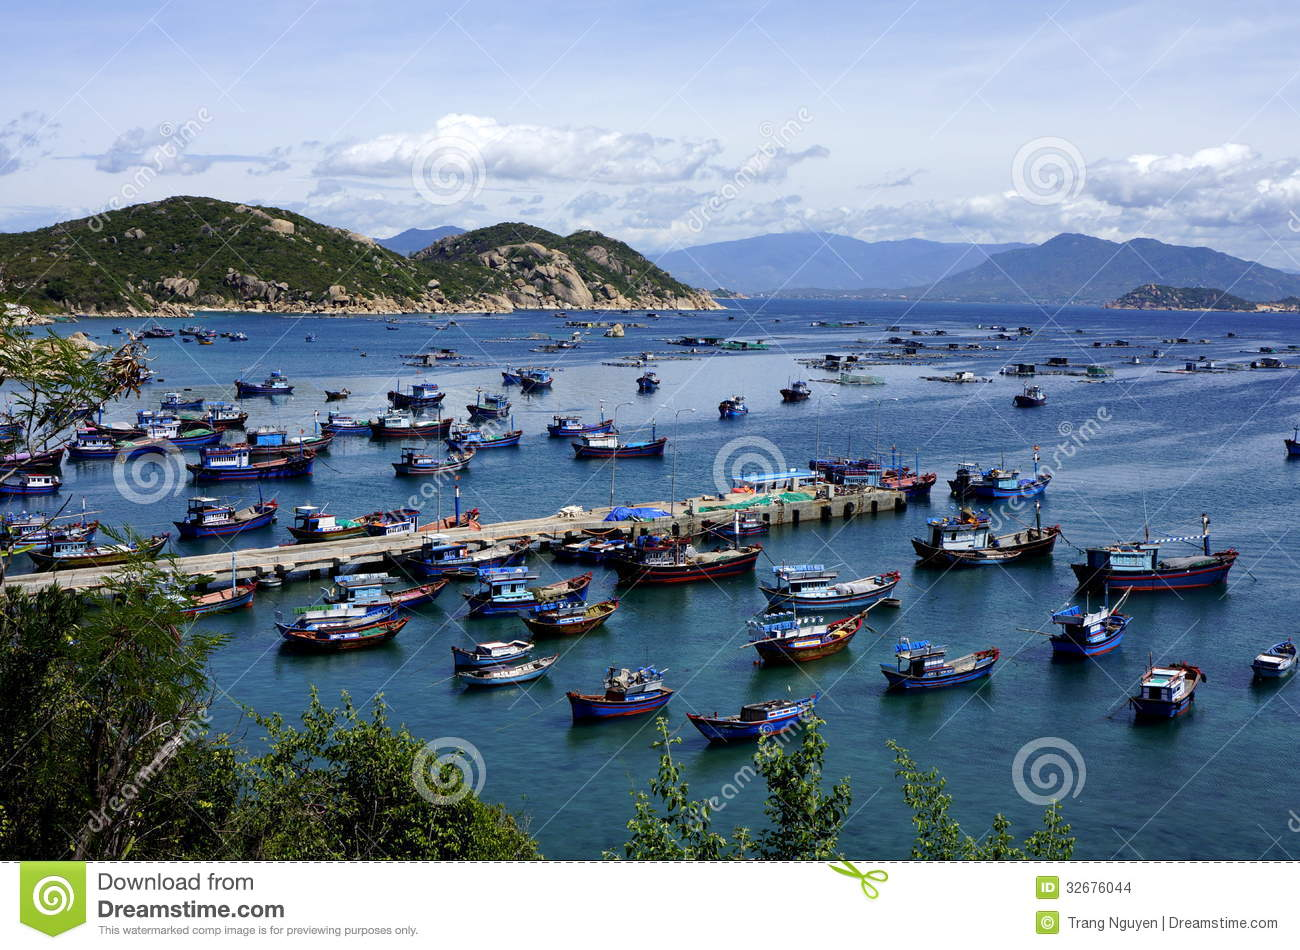 Vietnam fishing village stock photo. Image of harbour - 32676044